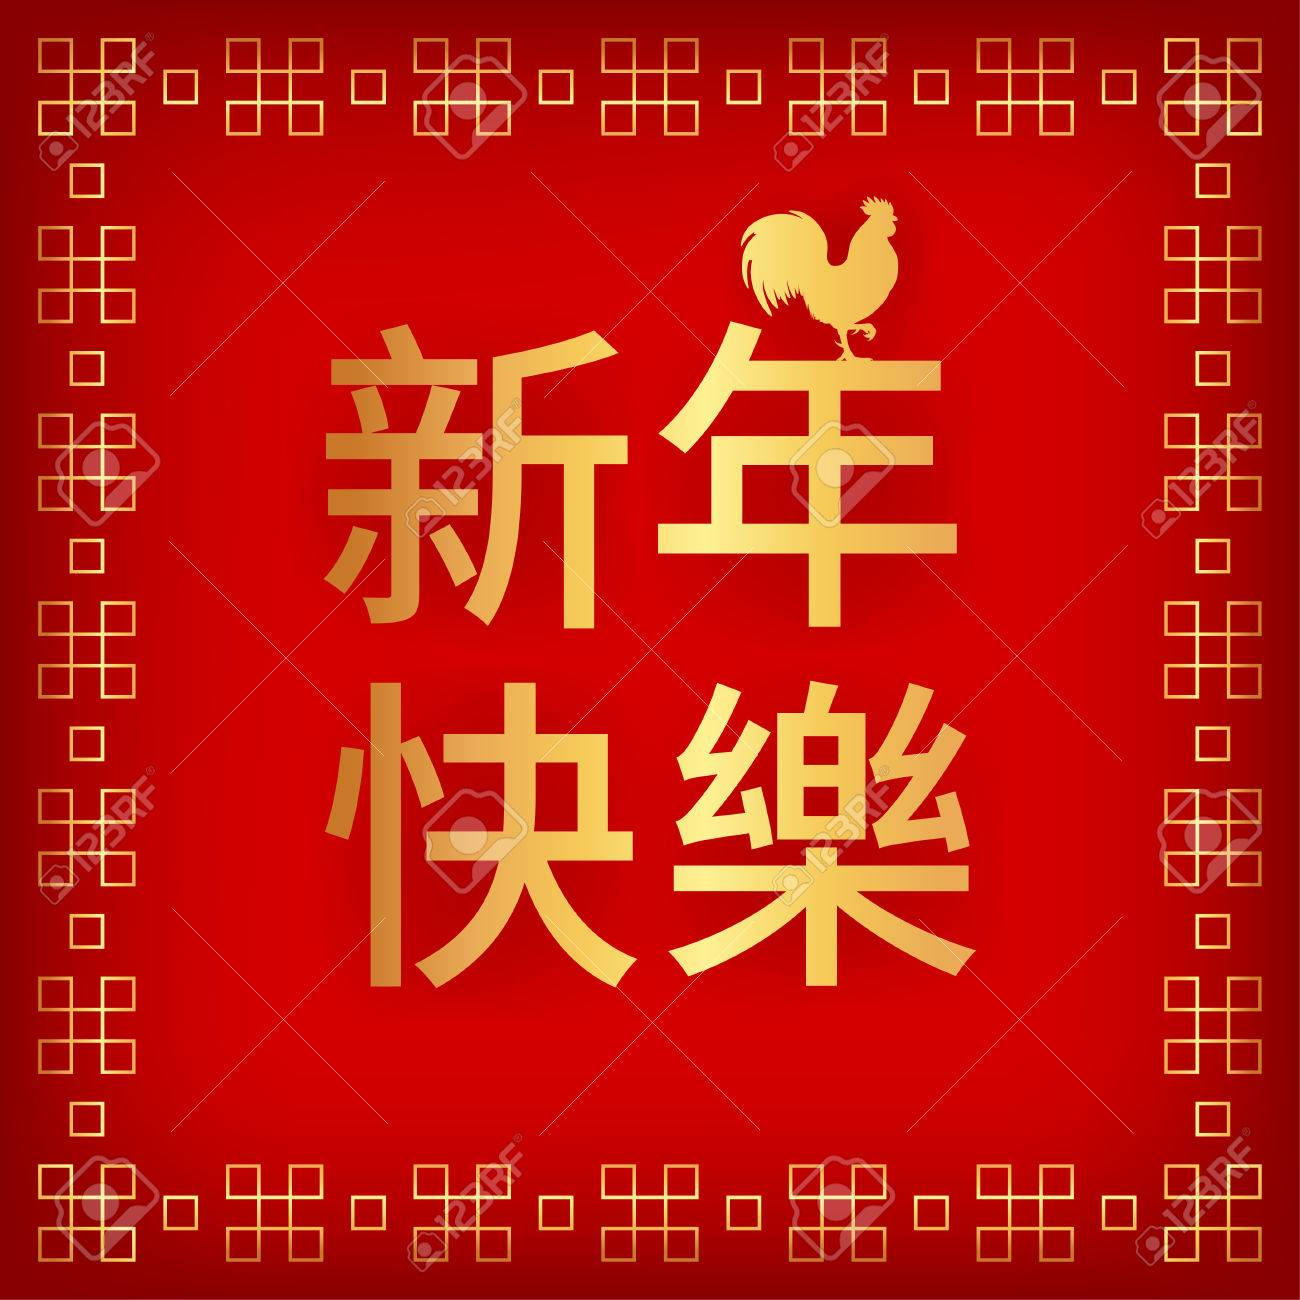 vector vector greeting card with text happy new year in traditional chinese silhouette of a rooster and geometric decorative border